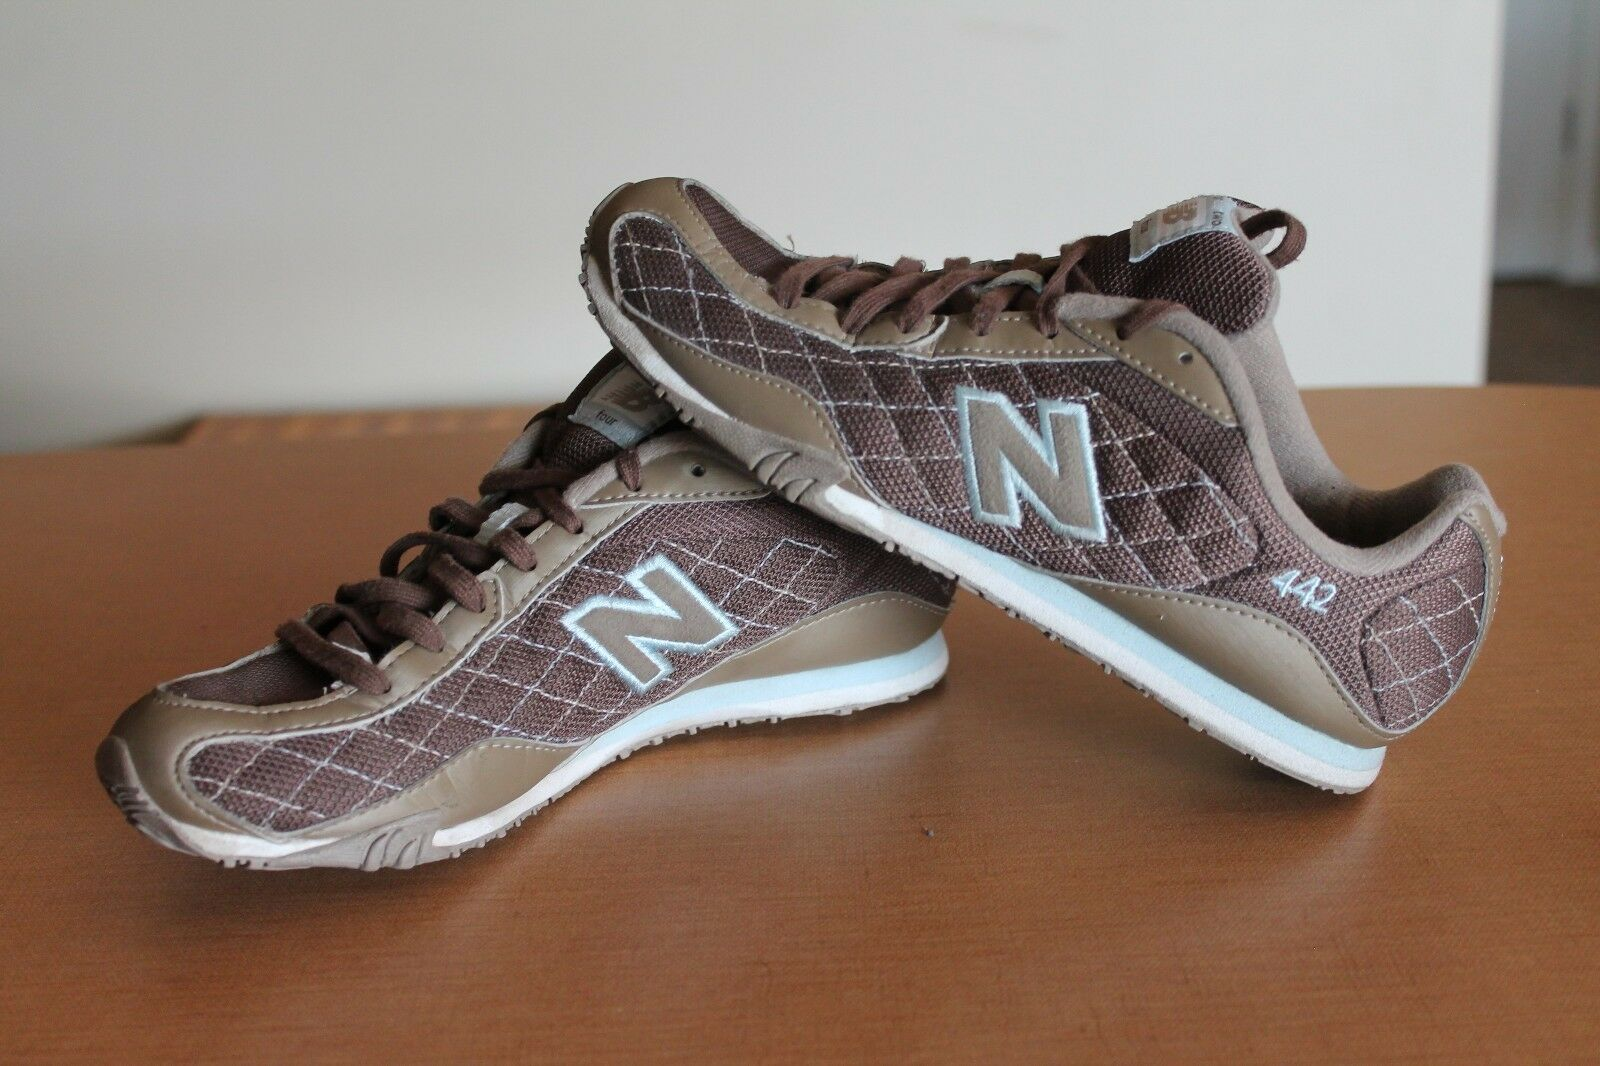 NB New Balance 442  Women's 6.5 6.5 6.5 Athletic Shoes Brown  Light Blue e29295